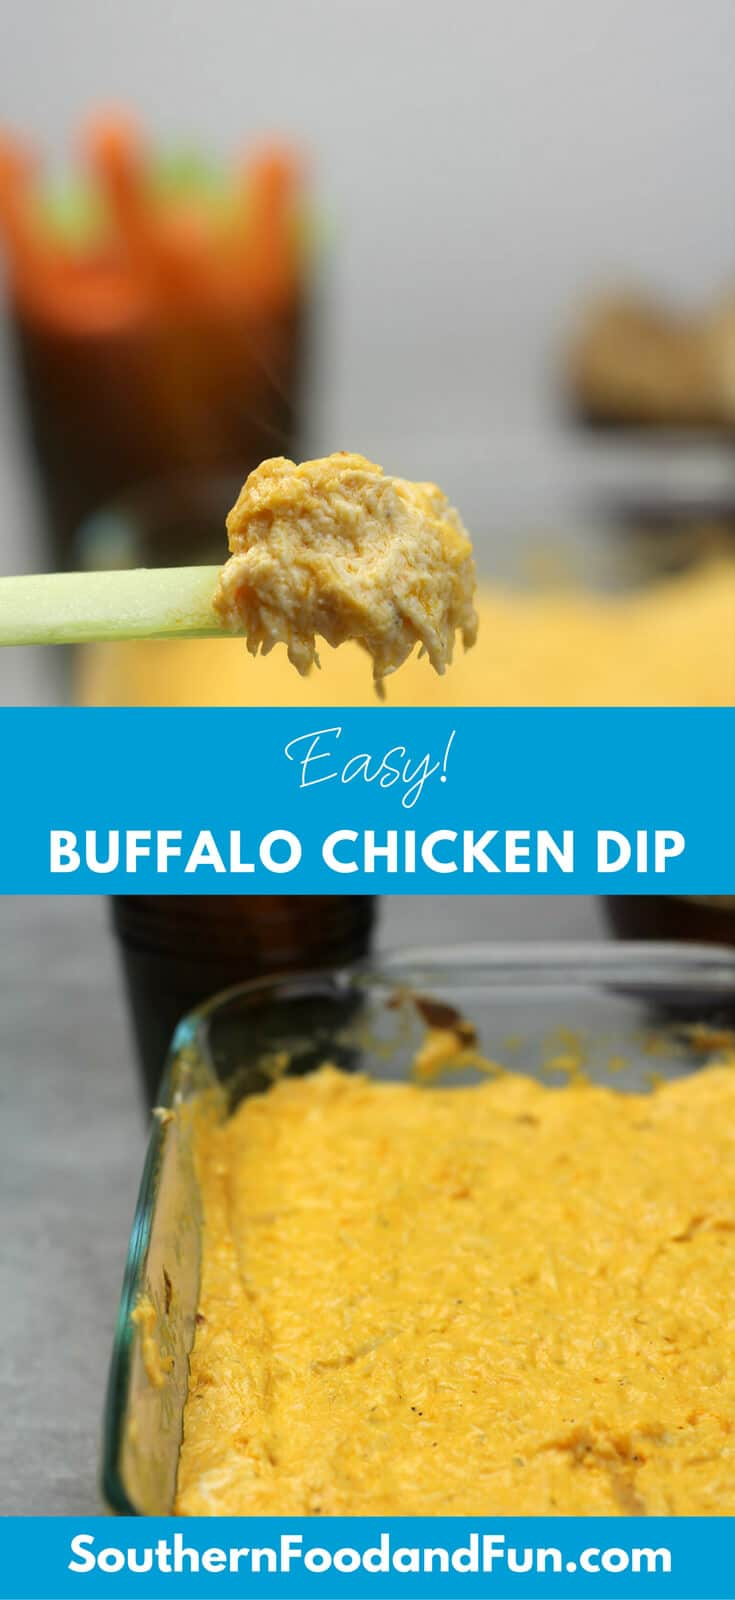 Easy Buffalo Chicken Dip made with three cheeses and Ranch dressing makes a great appetizer for feeding a crowd or weeknight dinner sliders. Takes just minutes to put together! #buffalochickendip #appetizers #easyappetizers #easybuffalochickendip #sliderrecipes #gamedayrecipes #easydinnerideas